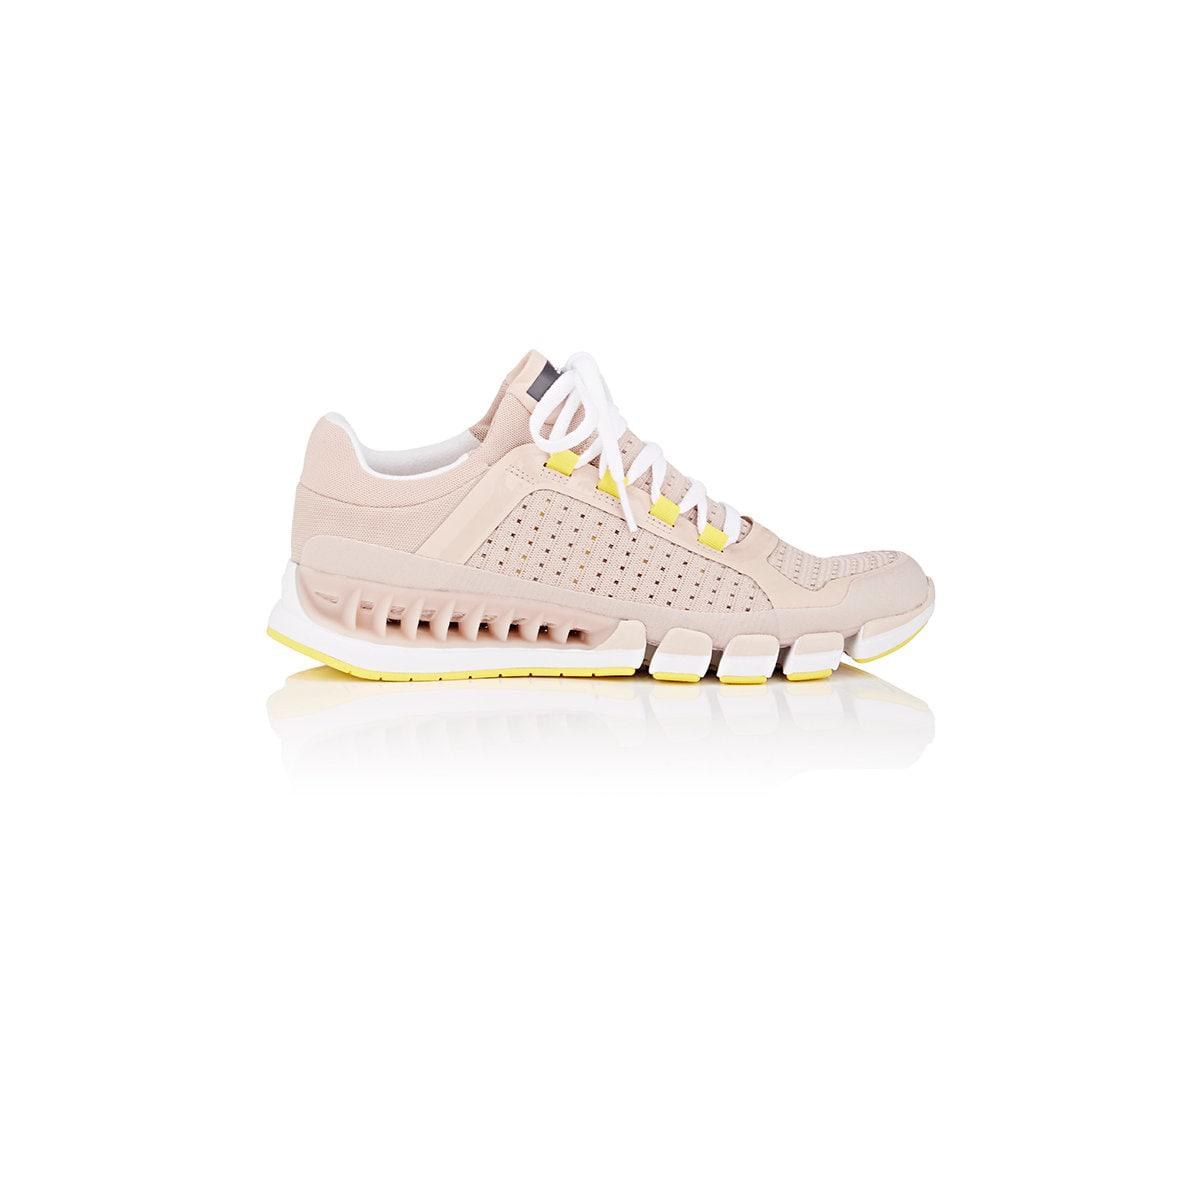 784c3a0fd942 adidas By Stella McCartney Climacool Revolution Sneakers in Pink - Lyst